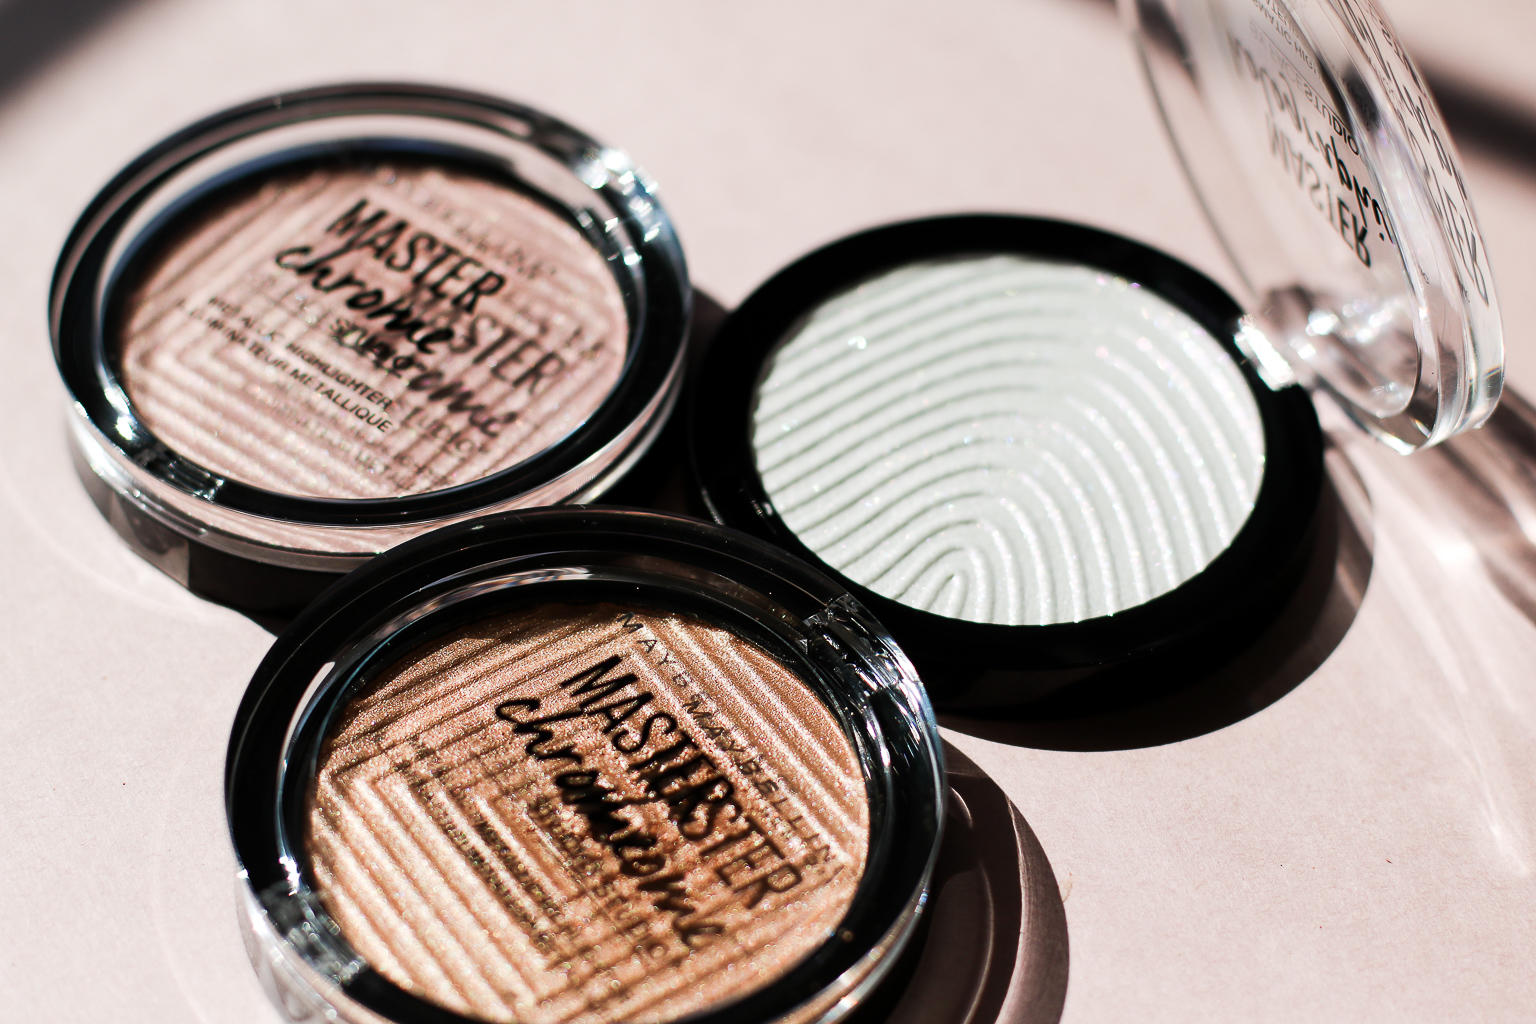 I Tried The Maybelline Masterchrome Metallic Highlighters And I'm Loving The Shine   Style Domination by Dominique Baker